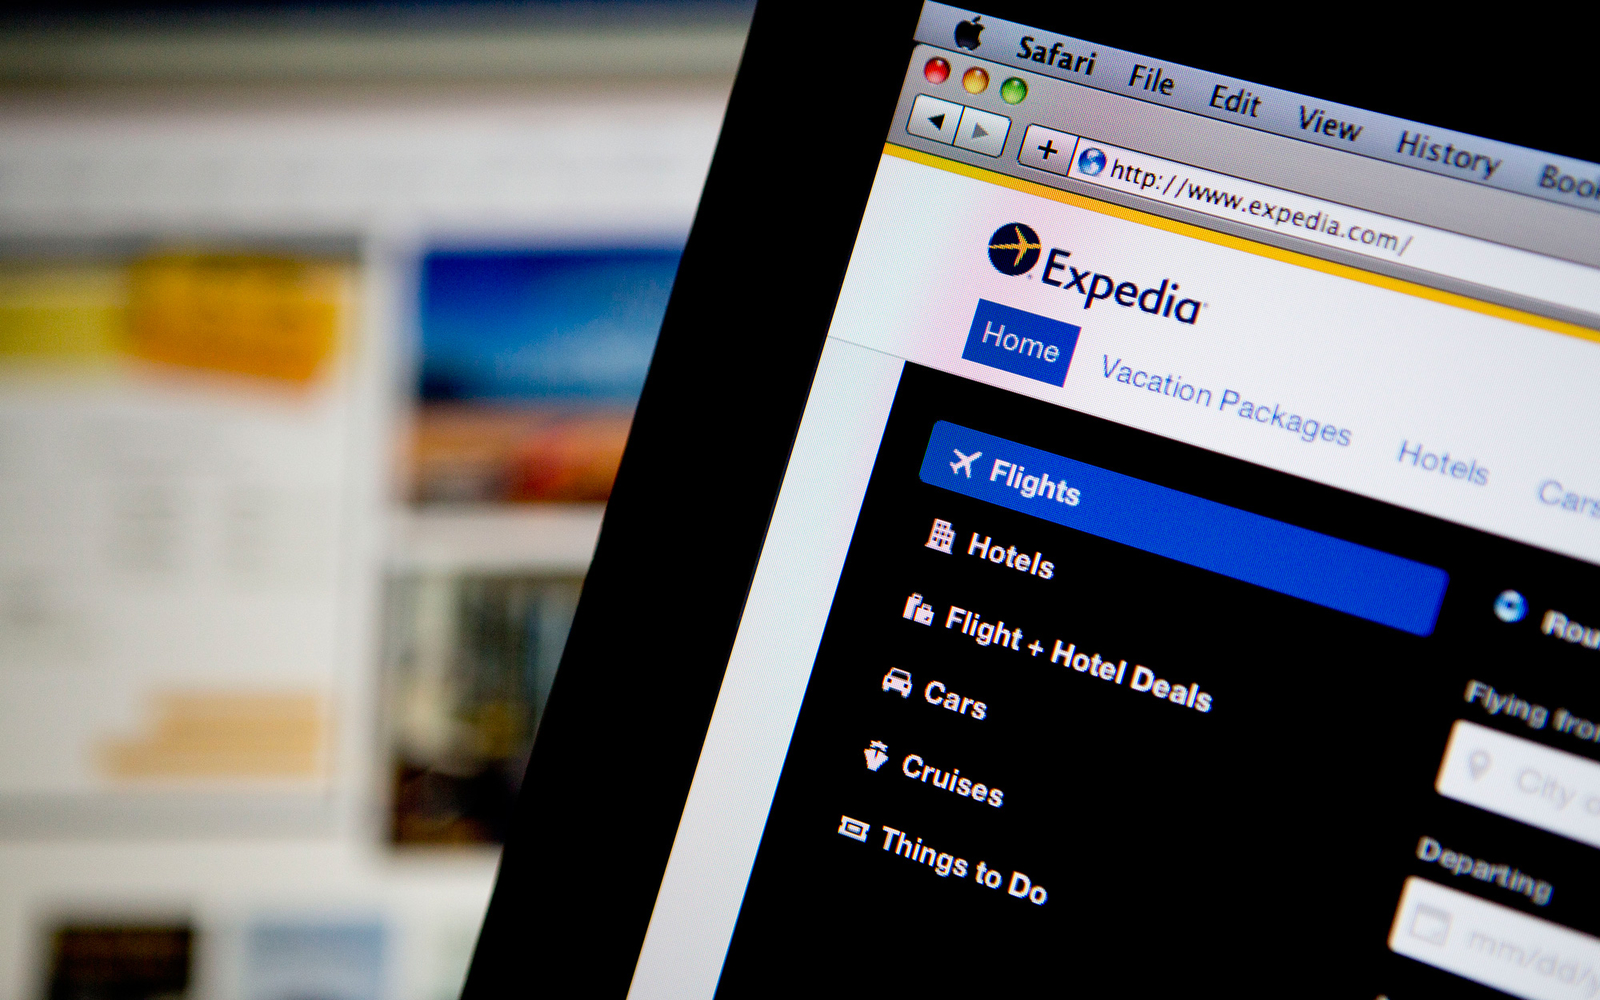 Expedia to Reveal Airlines' 'Hidden Fees' in New Feature